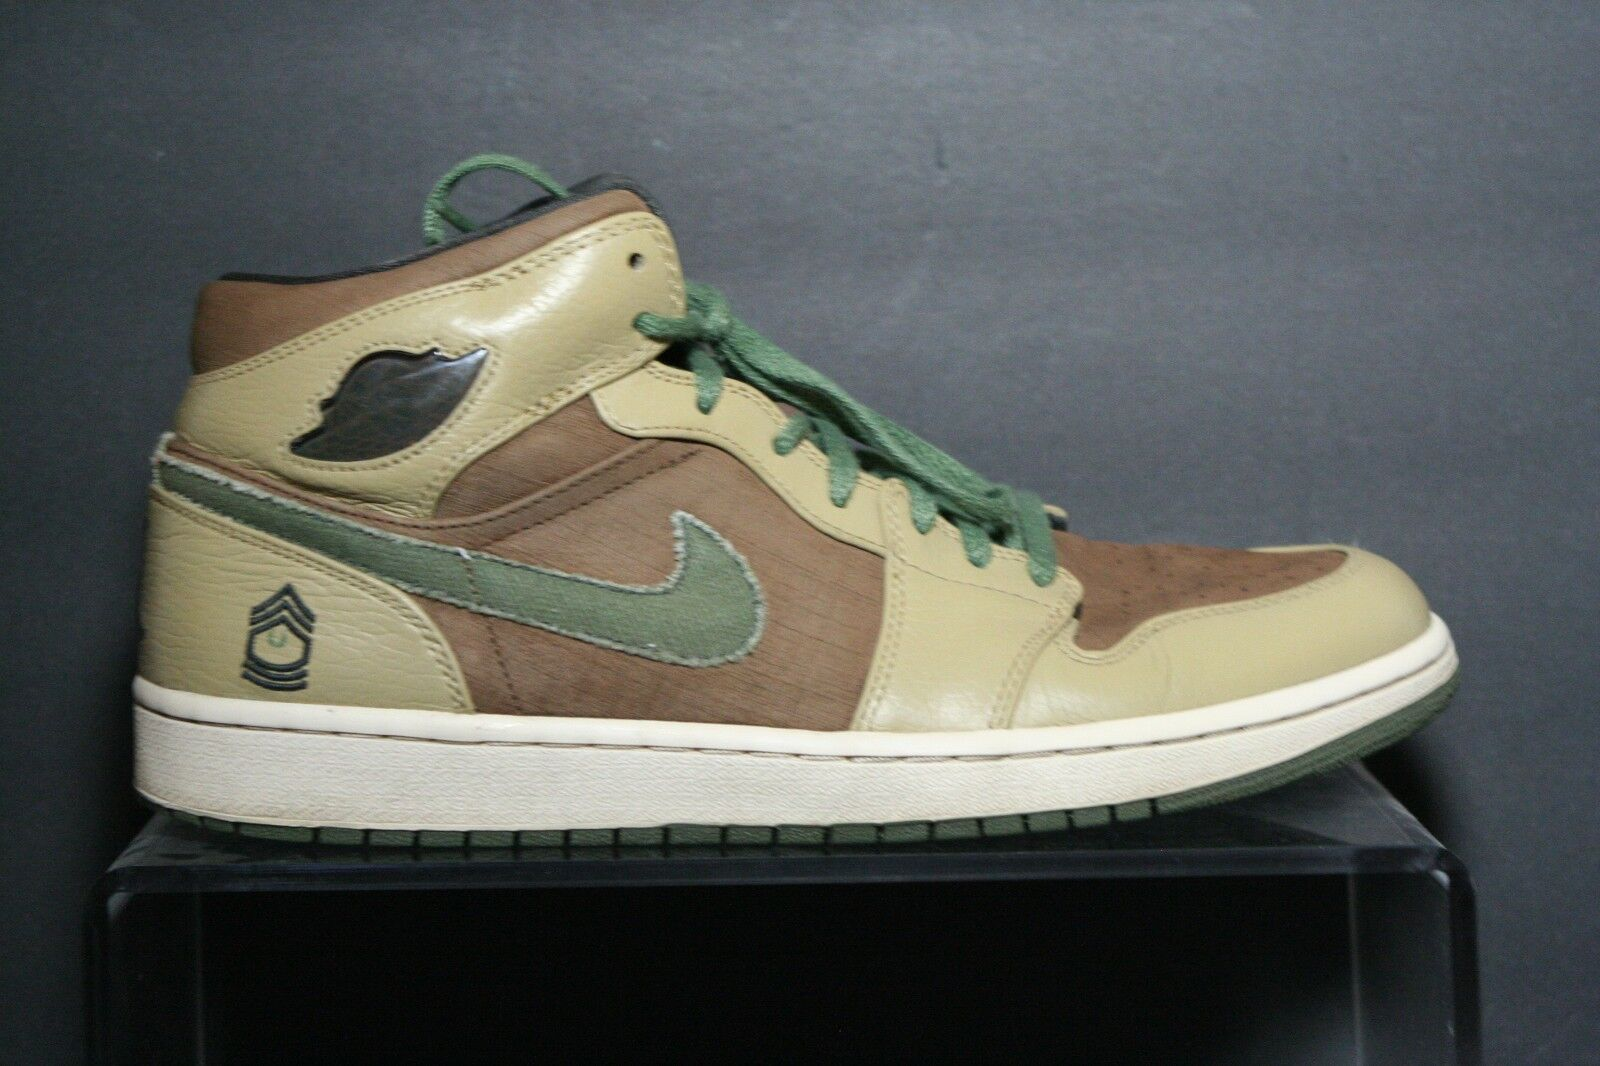 Nike Air Jordan 1 Retro Hi Armed Forces 2018 Multi Camo Men 12 Athletic B-Ball The latest discount shoes for men and women